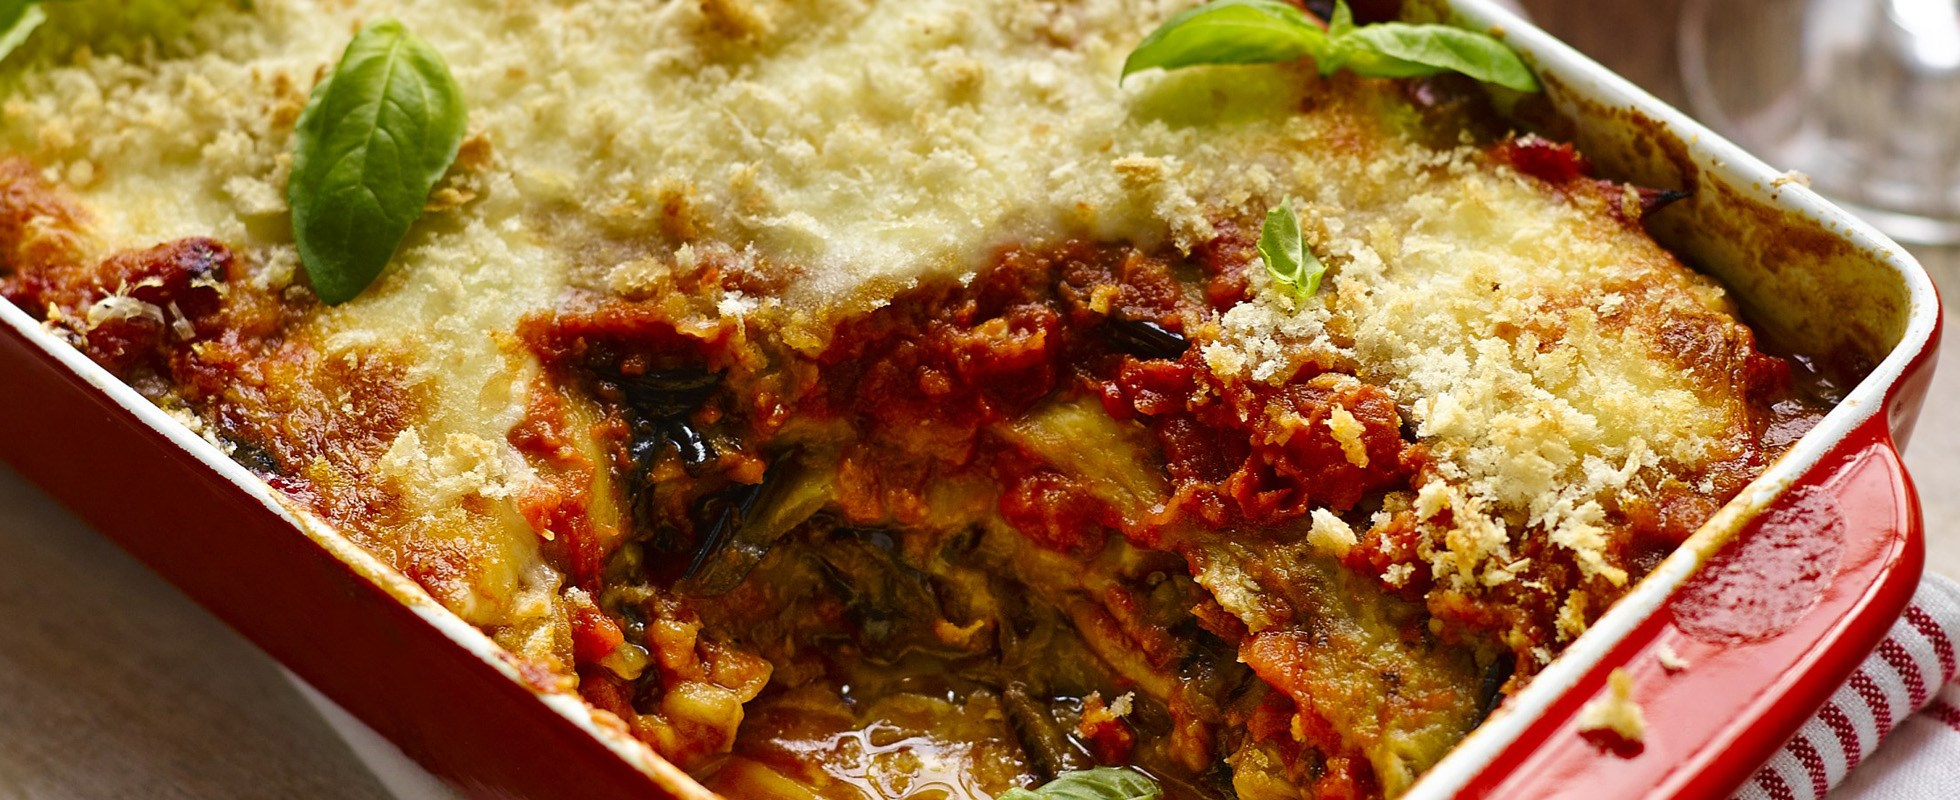 28 italian recipes for the best italian food olive magazine easy recipe for aubergine parmigiana this italian classic of layers of tomato sauce aubergine and parmesan is simple to make and is good for entertaining forumfinder Image collections